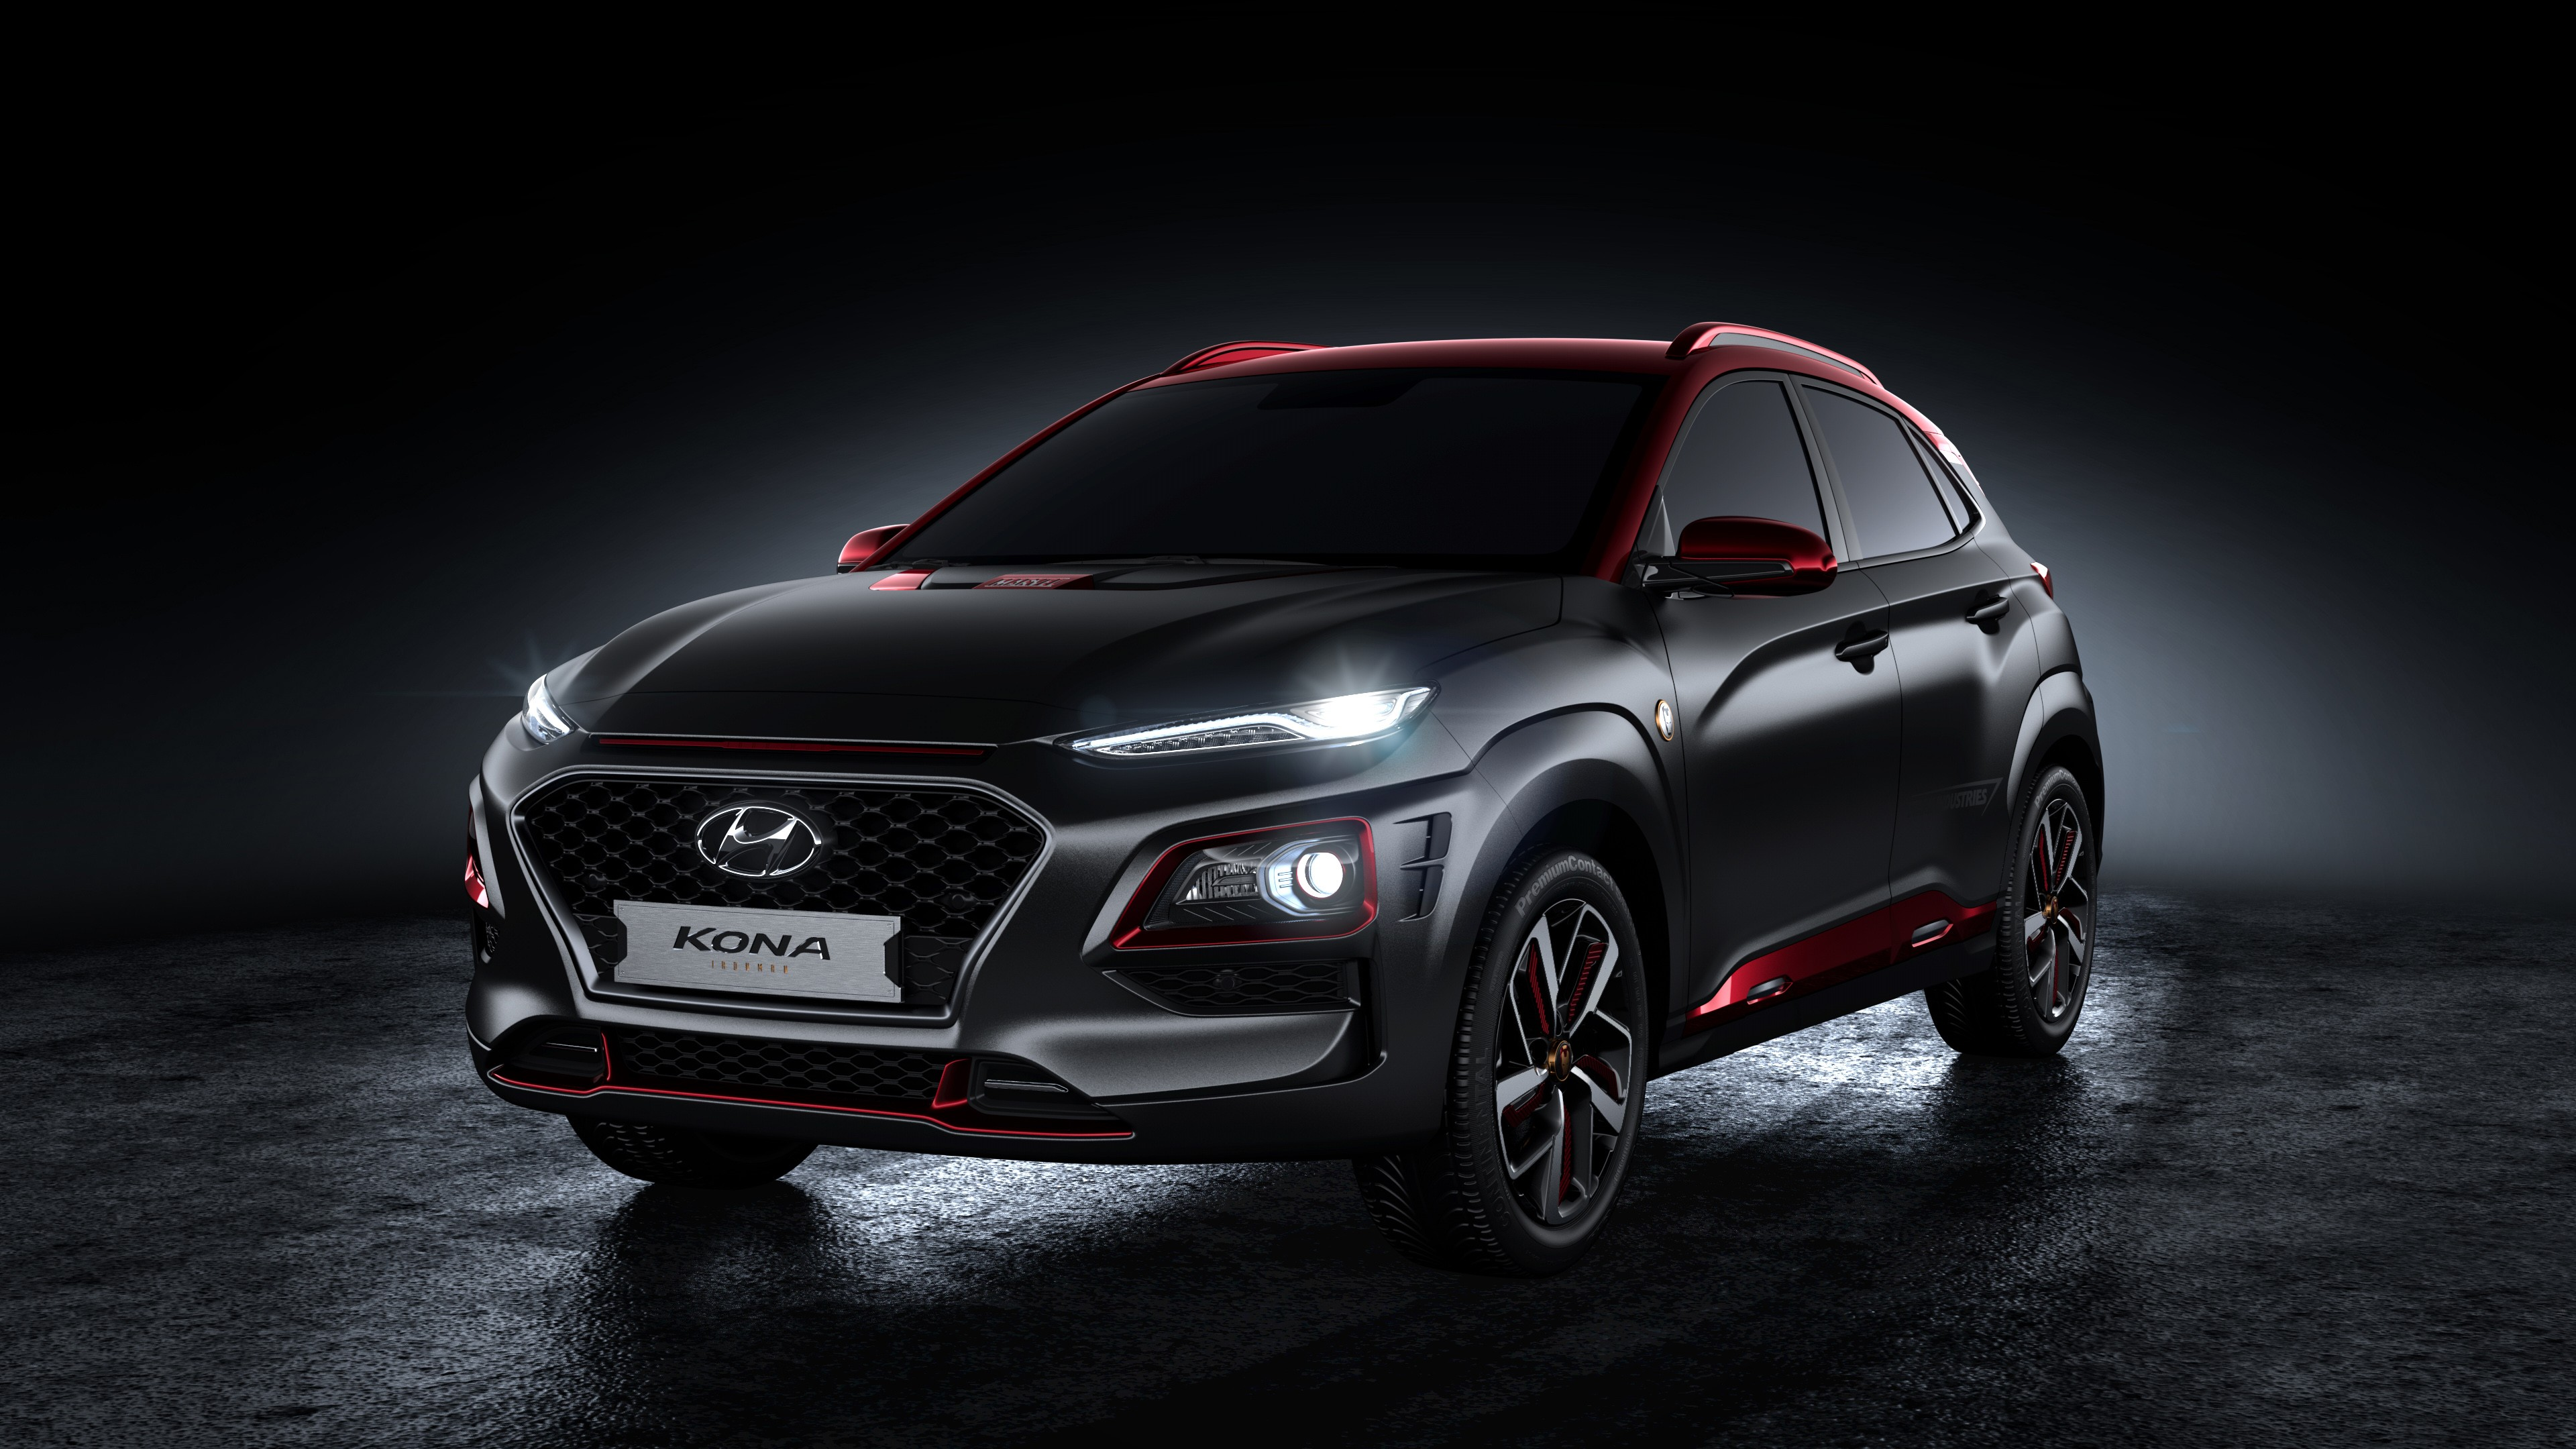 Hyundai Kona Iron Man Edition 2019 4k Wallpaper Hd Car Wallpapers Id 10879